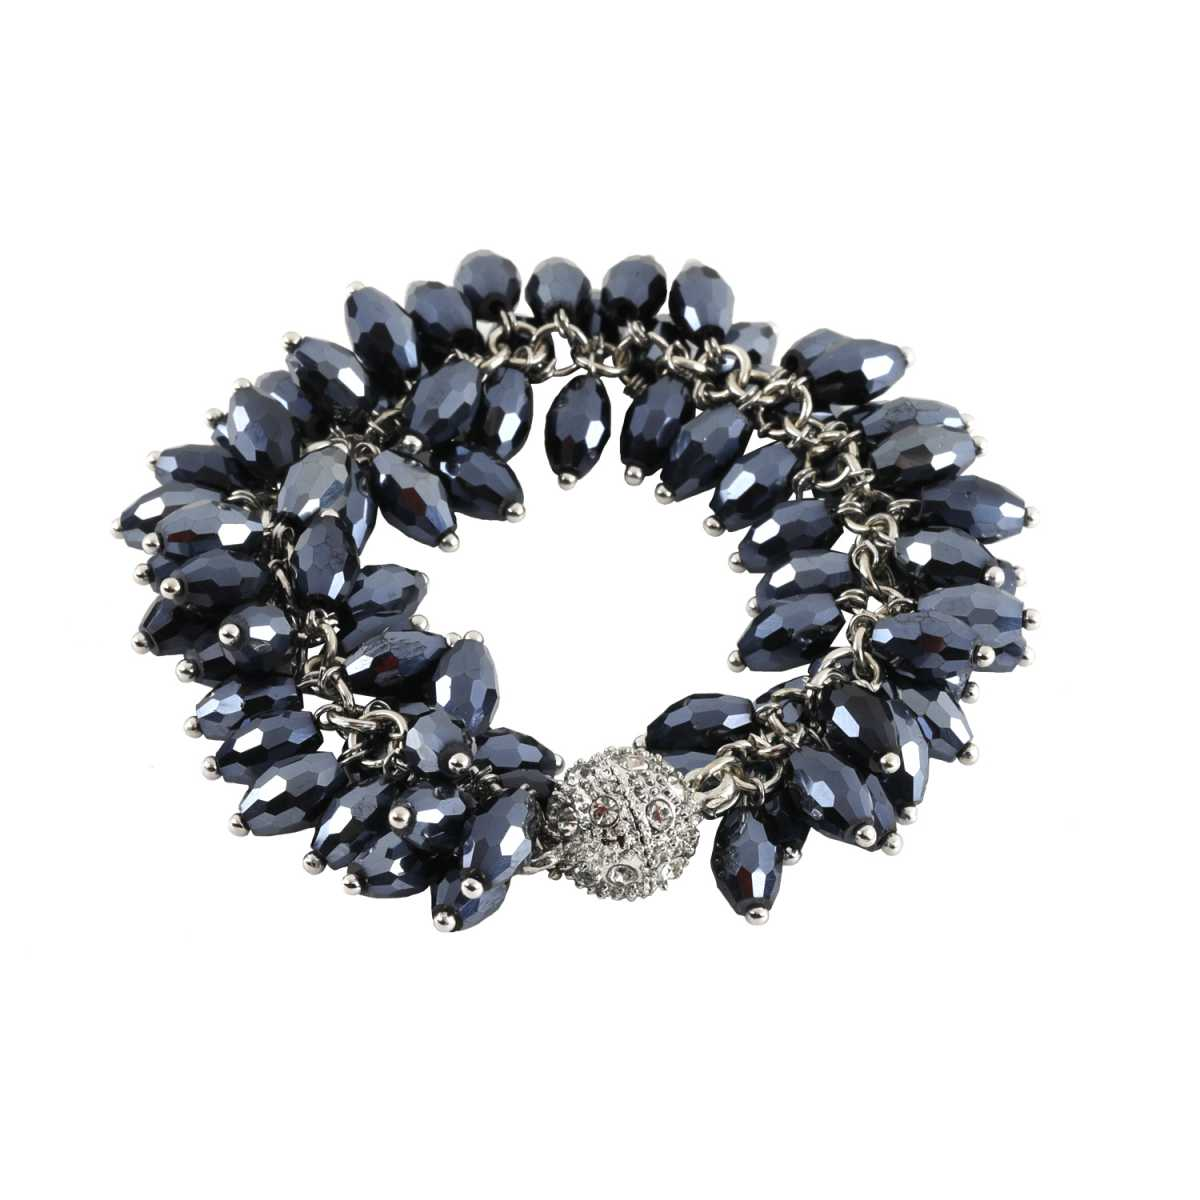 Black Pearl Diamond Bracelet For Girls And Women